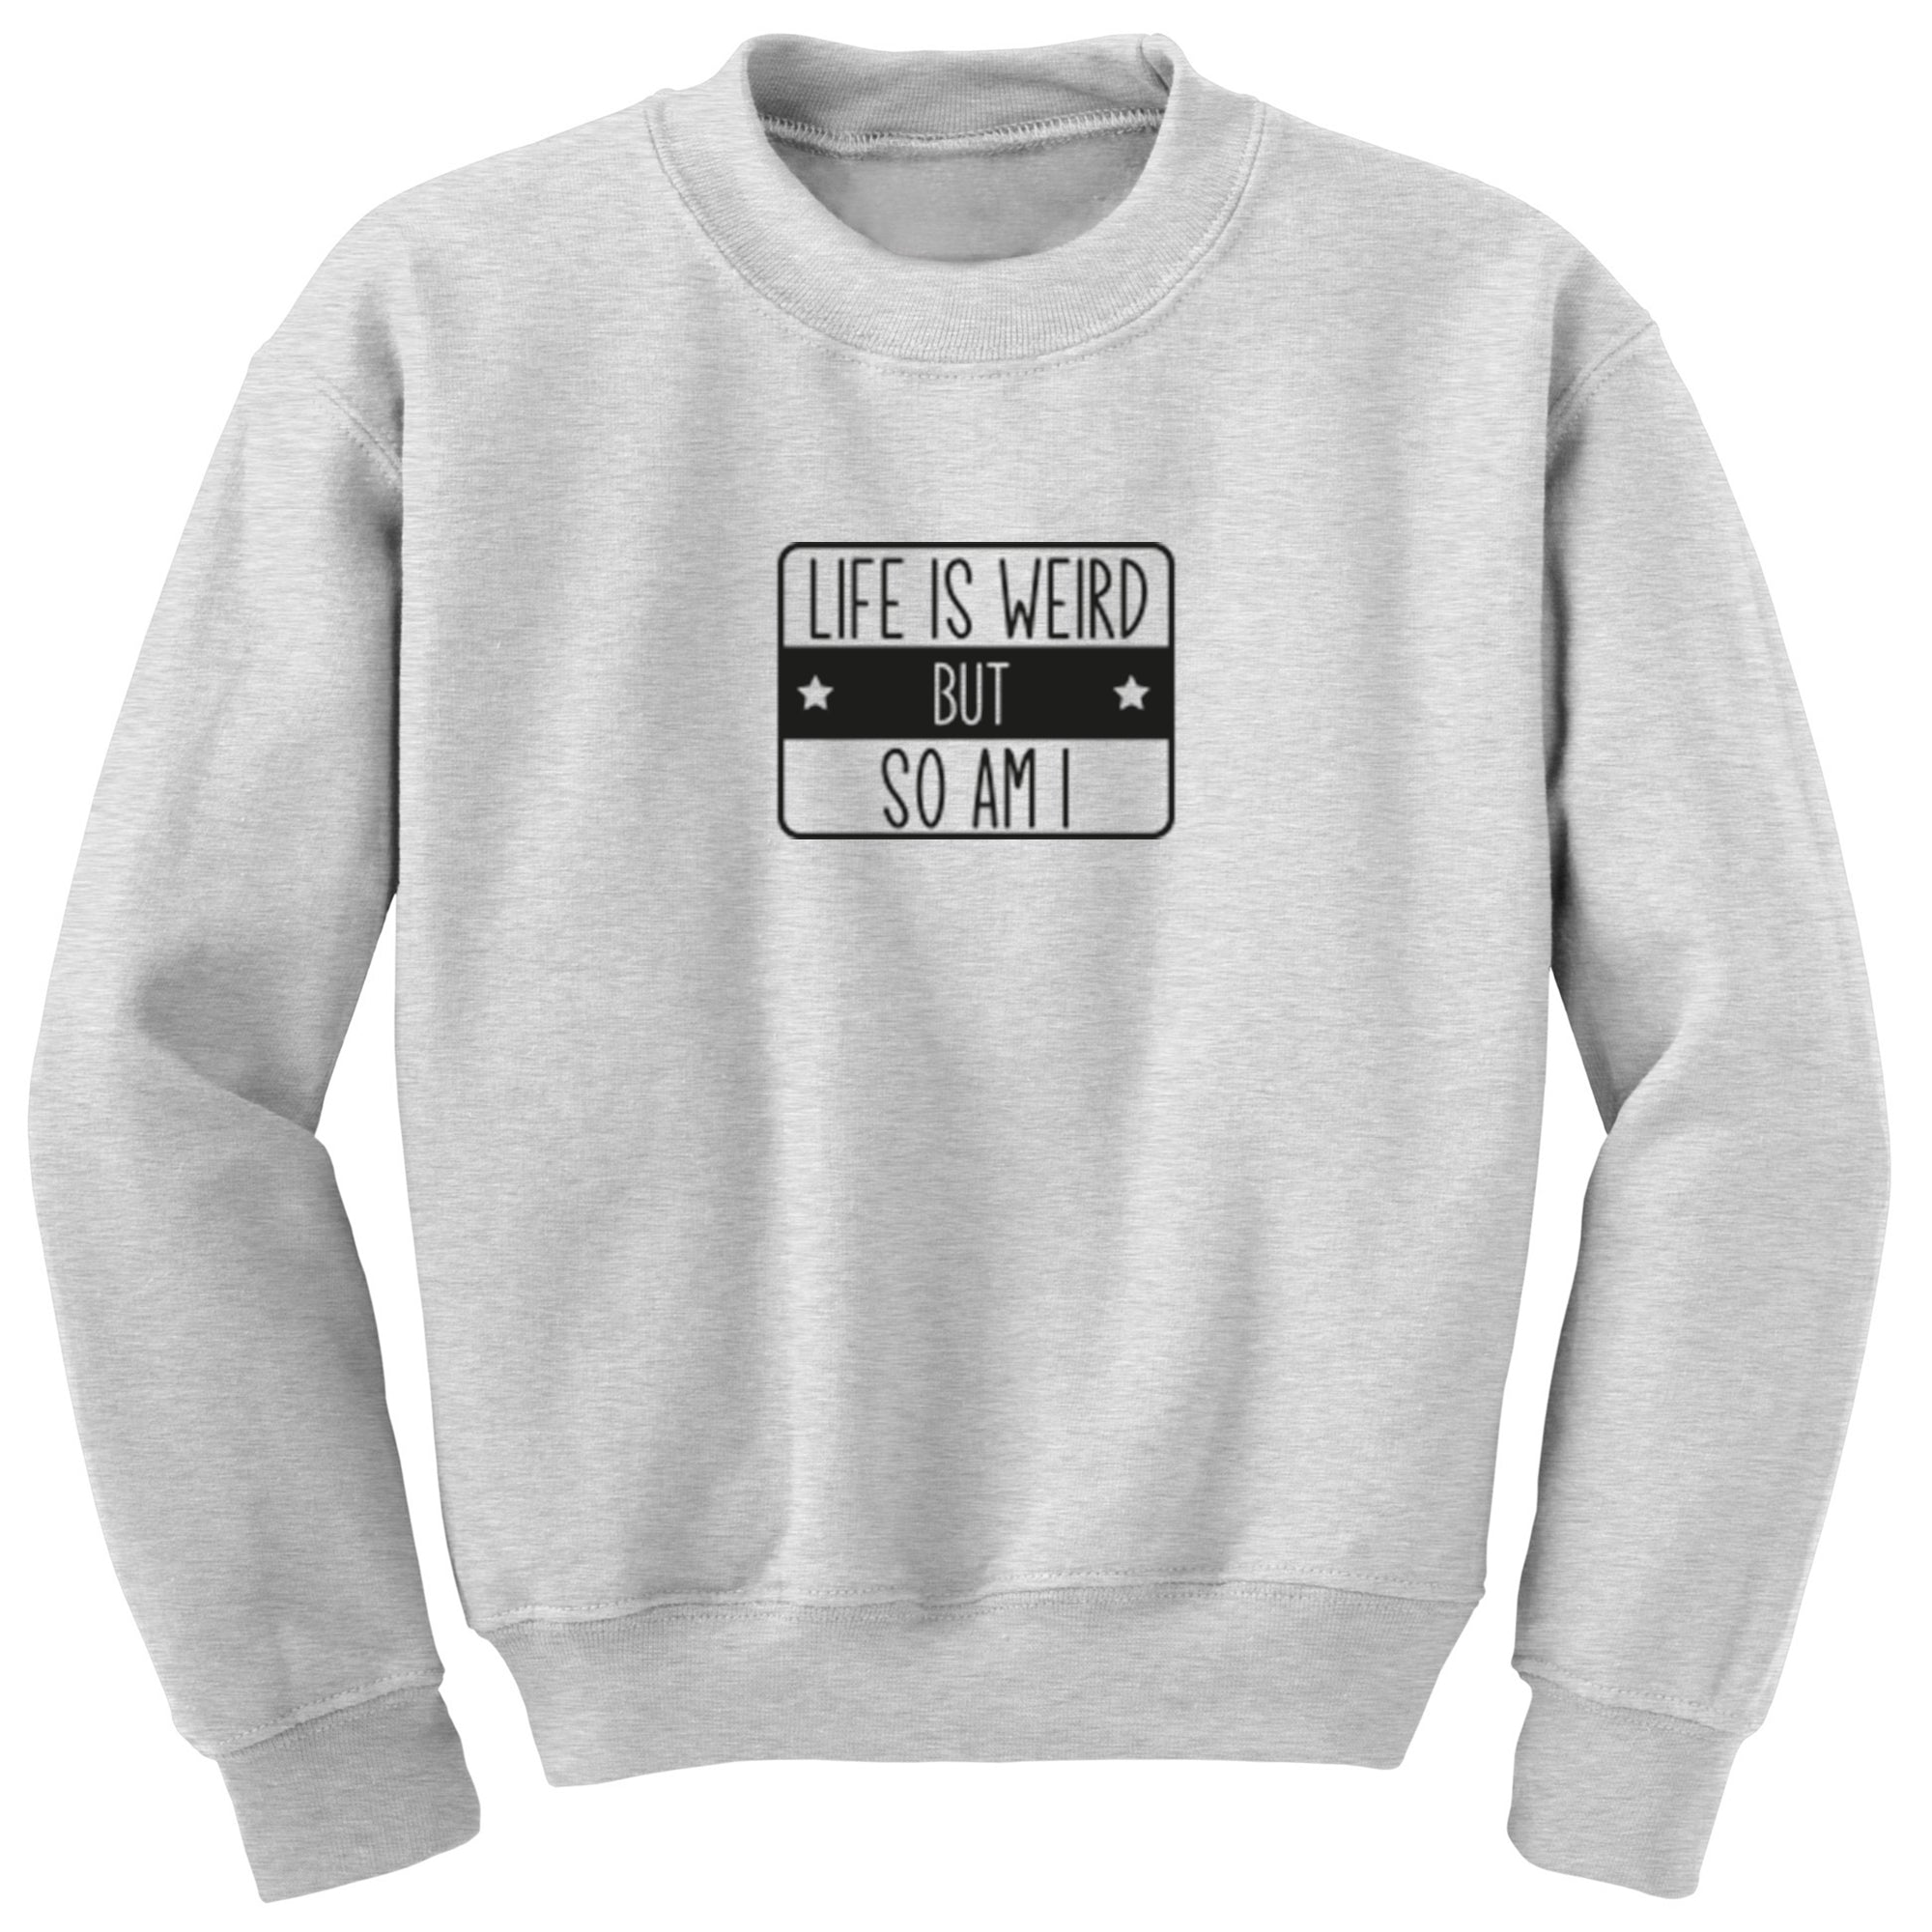 Life Is Weird But So Am I Unisex Jumper S1148 - Illustrated Identity Ltd.